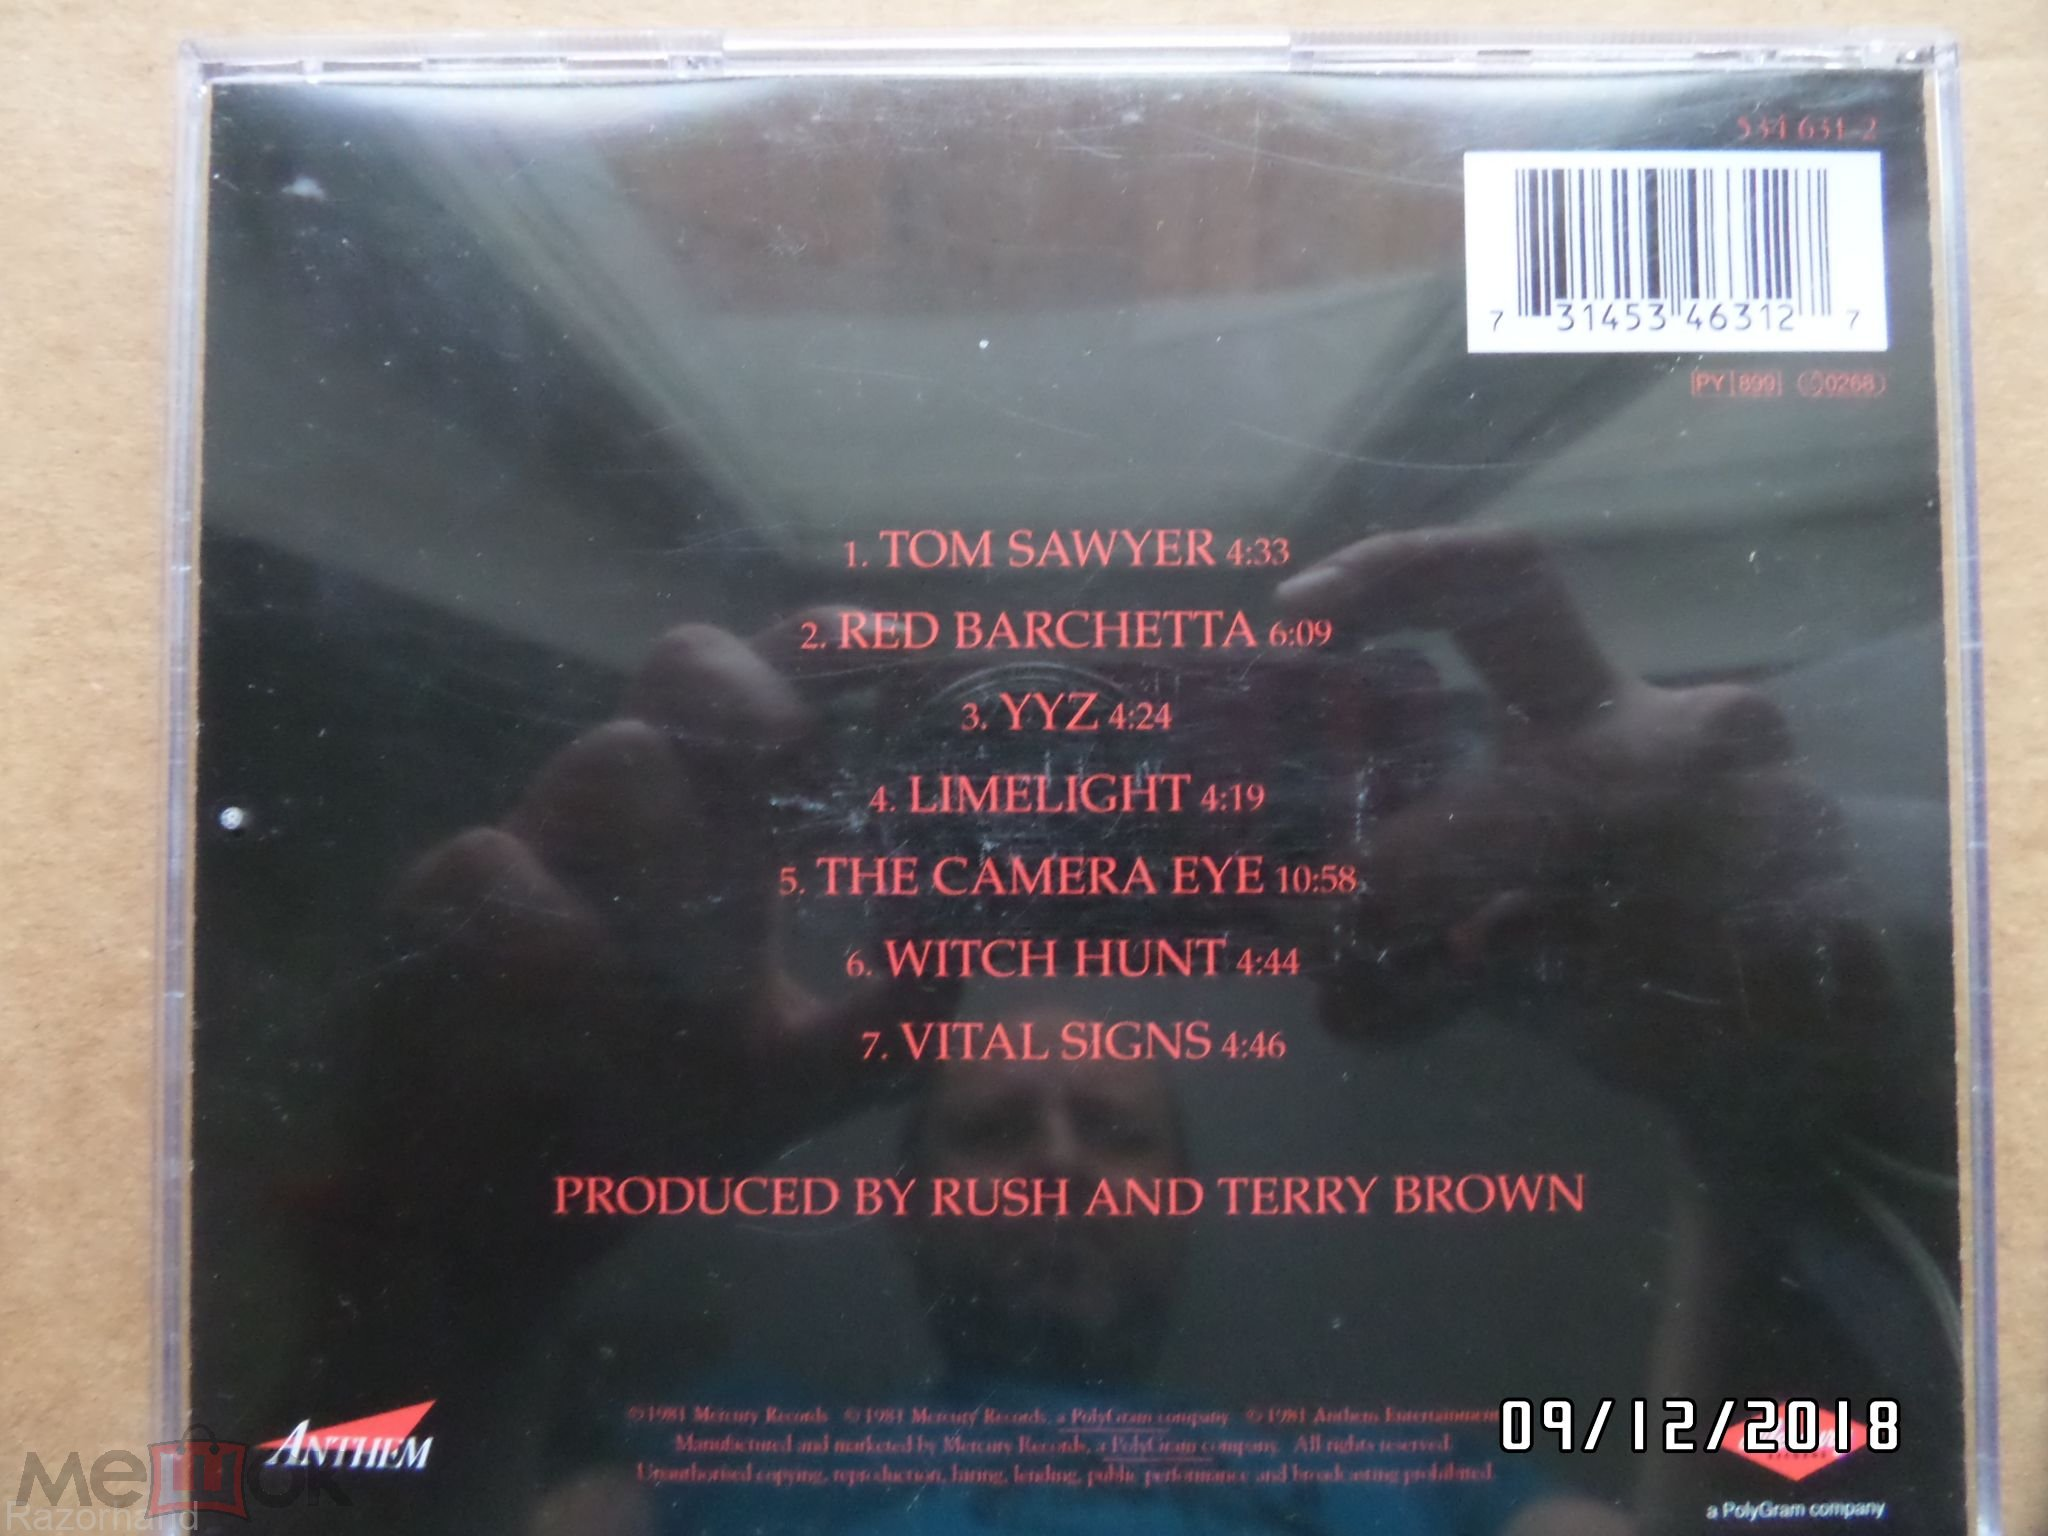 Rush 1981 Moving Pictures - Germany CD EDC - Mercury - Anthem